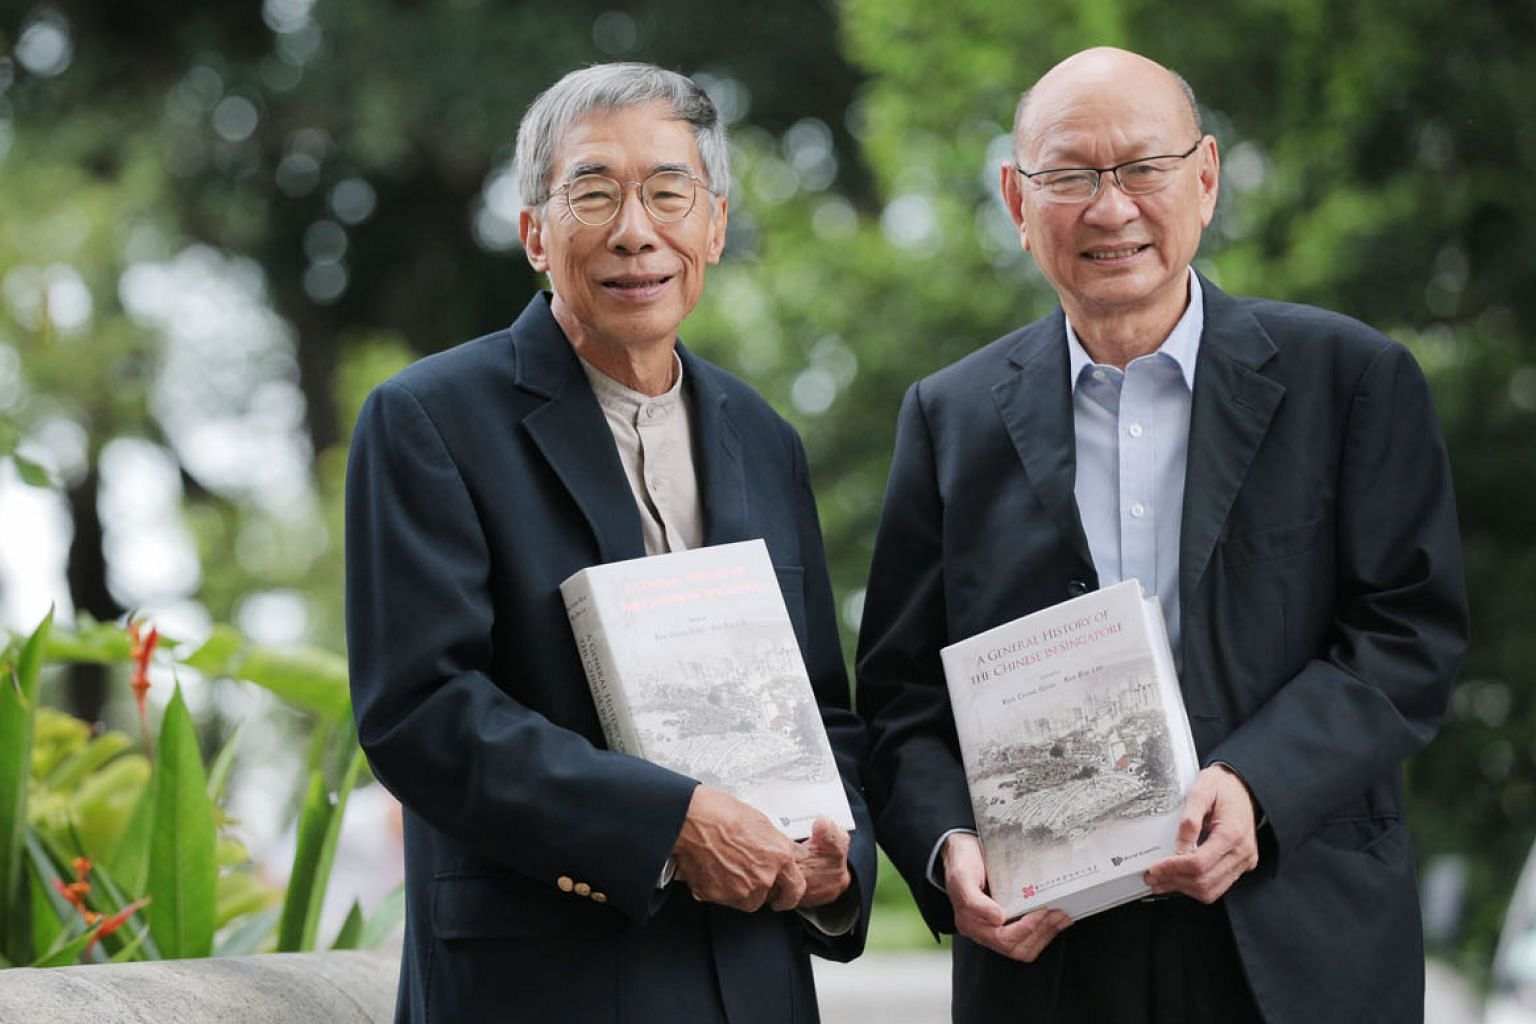 Historians Kwa Chong Guan (left) and Kua Bak Lim with copies of the newly launched English edition of A General History Of The Chinese in Singapore, of which they are co-editors.